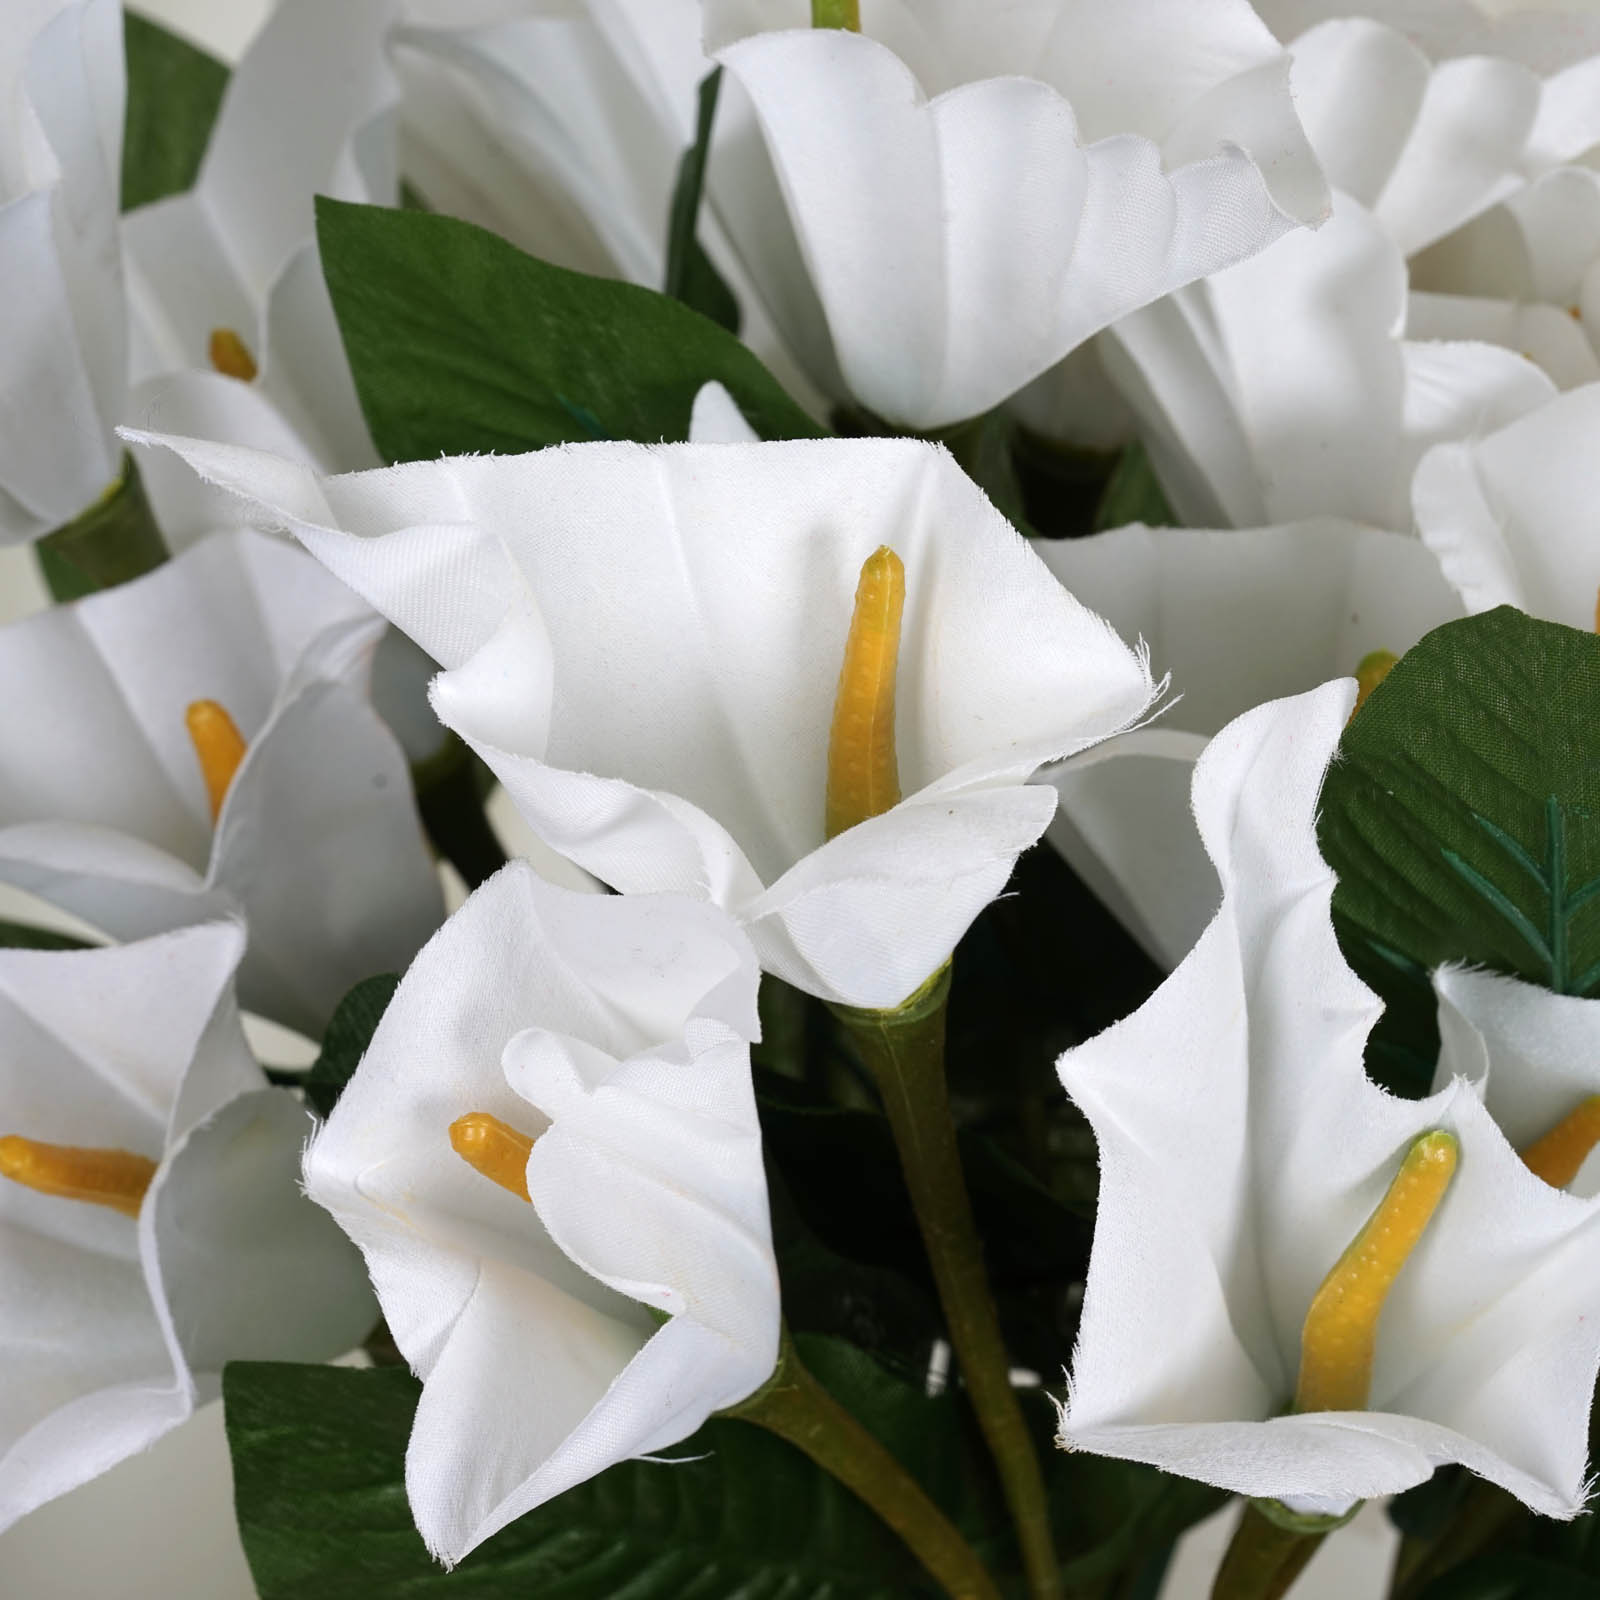 84 silk calla lily flowers for wedding bouquets centerpieces 84 silk calla lily flowers for wedding bouquets izmirmasajfo